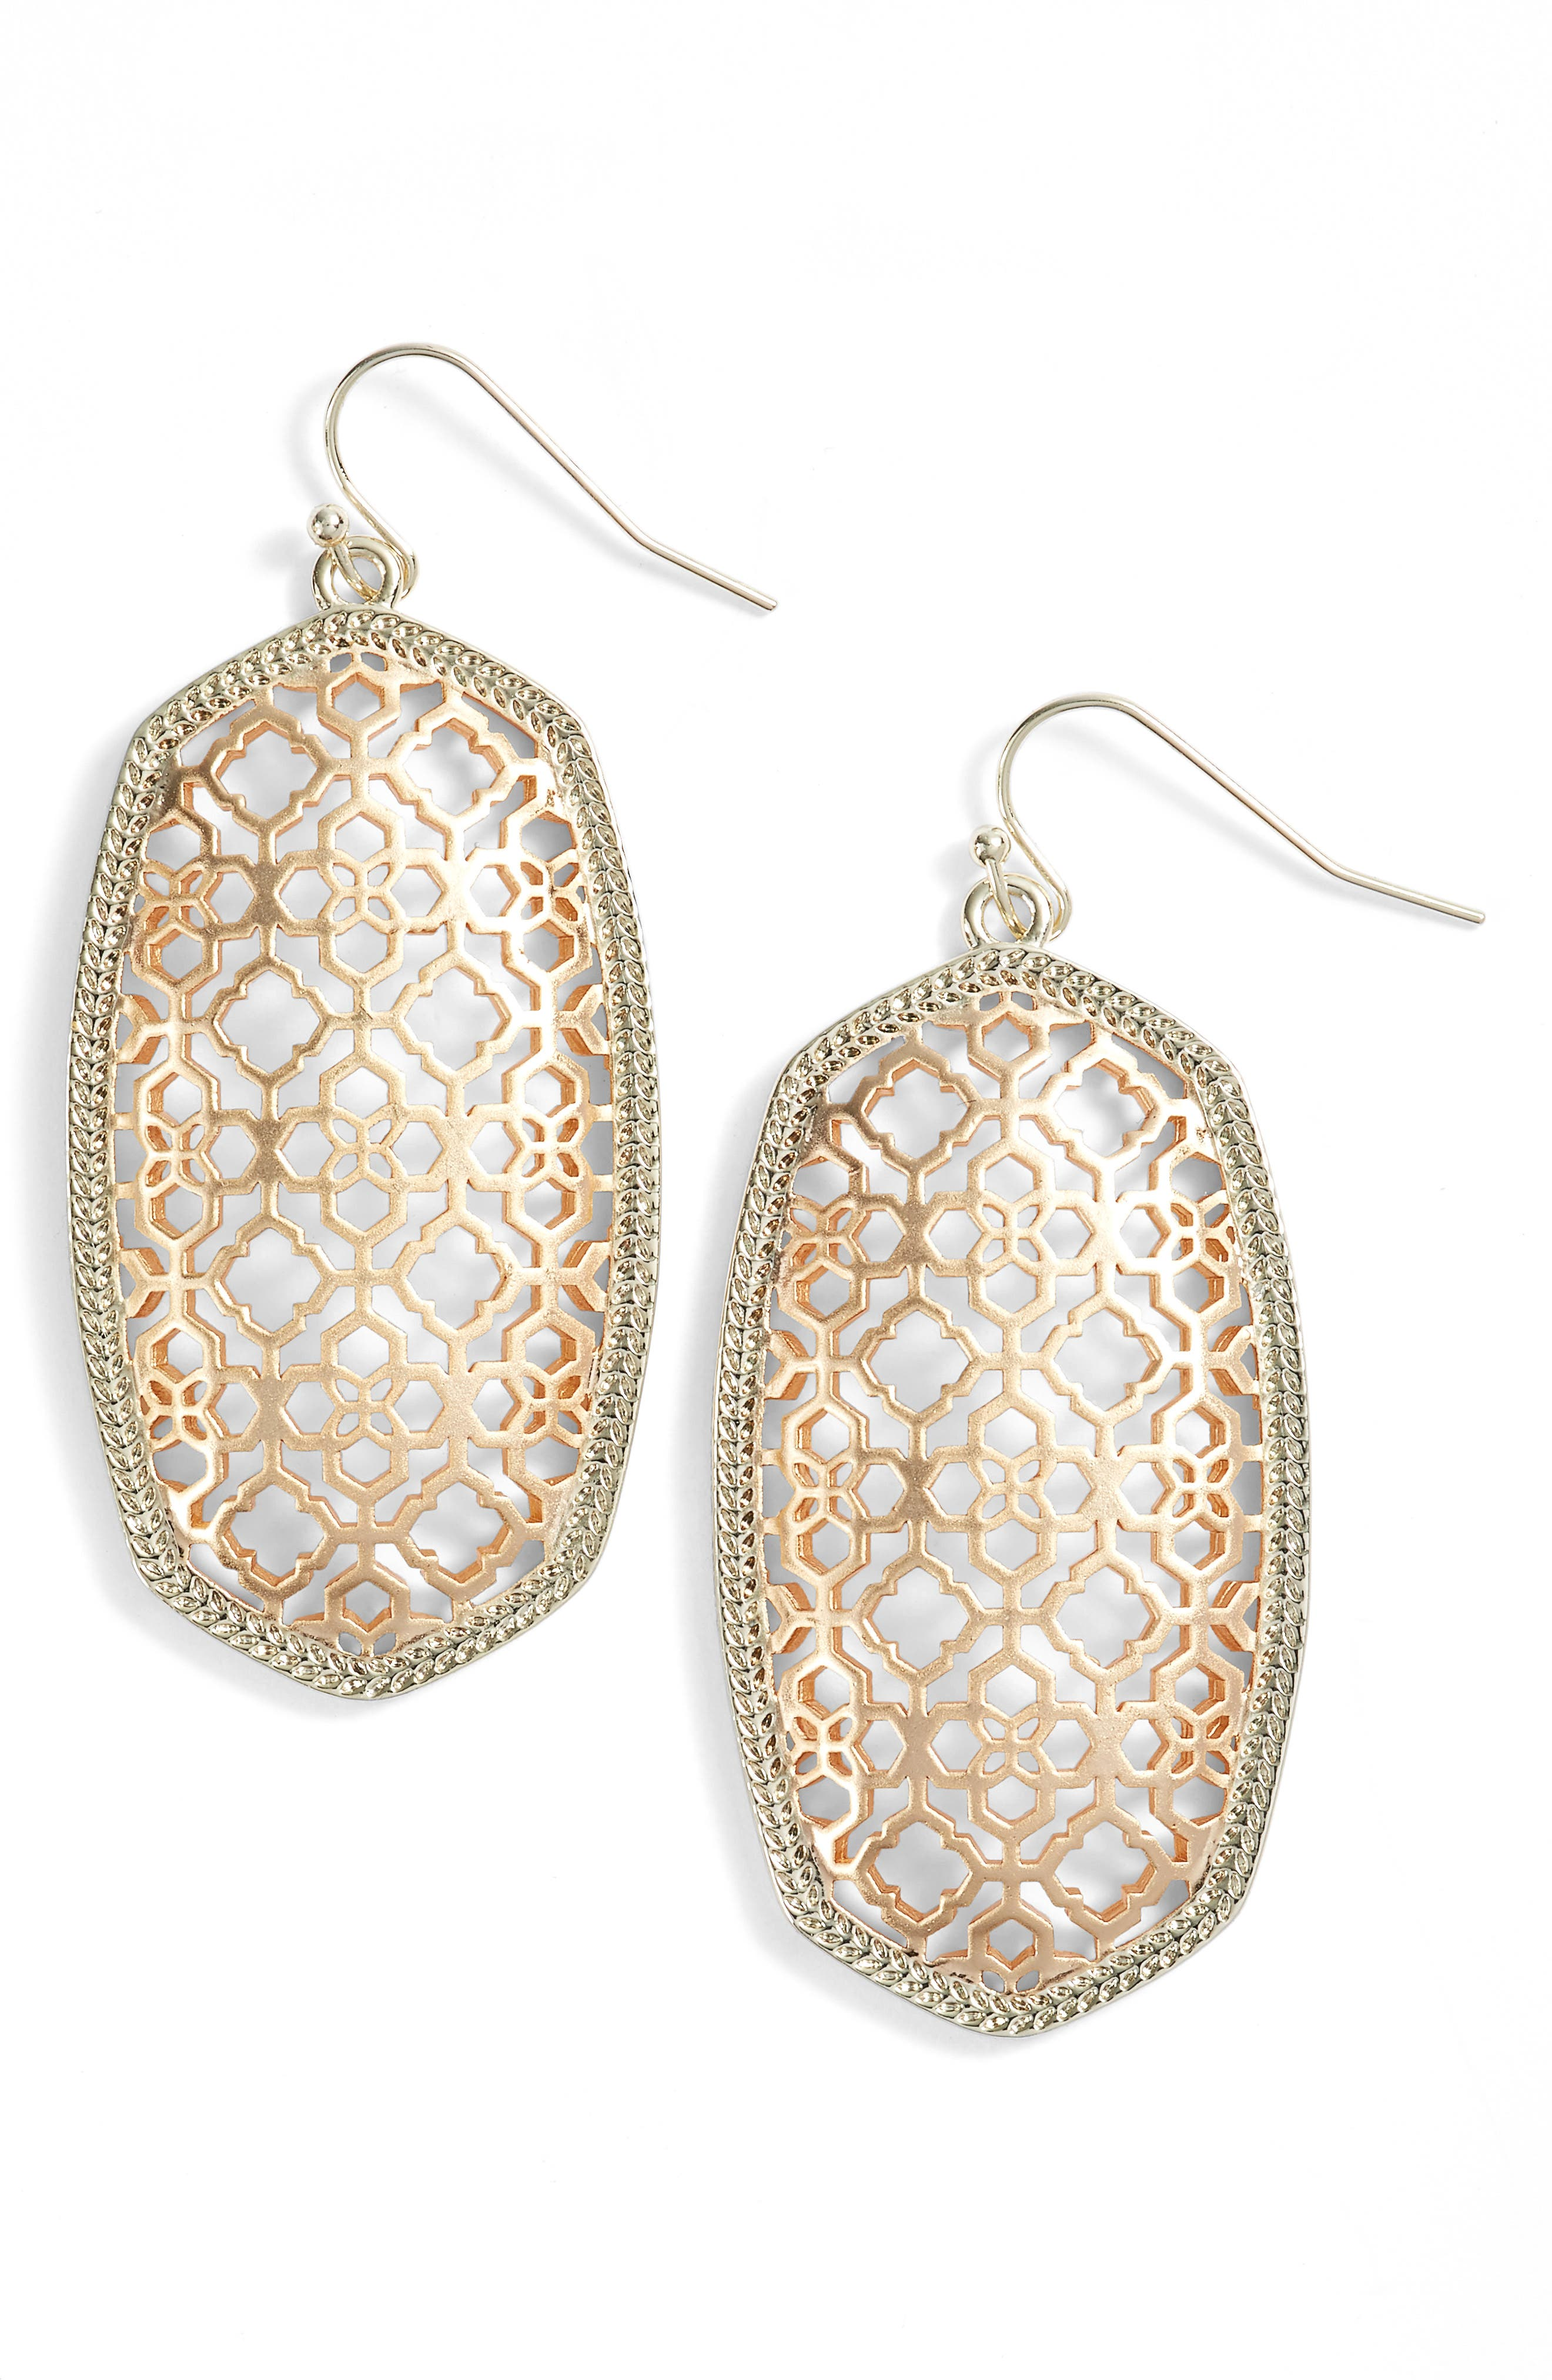 Danielle - Large Oval Statement Earrings,                             Main thumbnail 82, color,